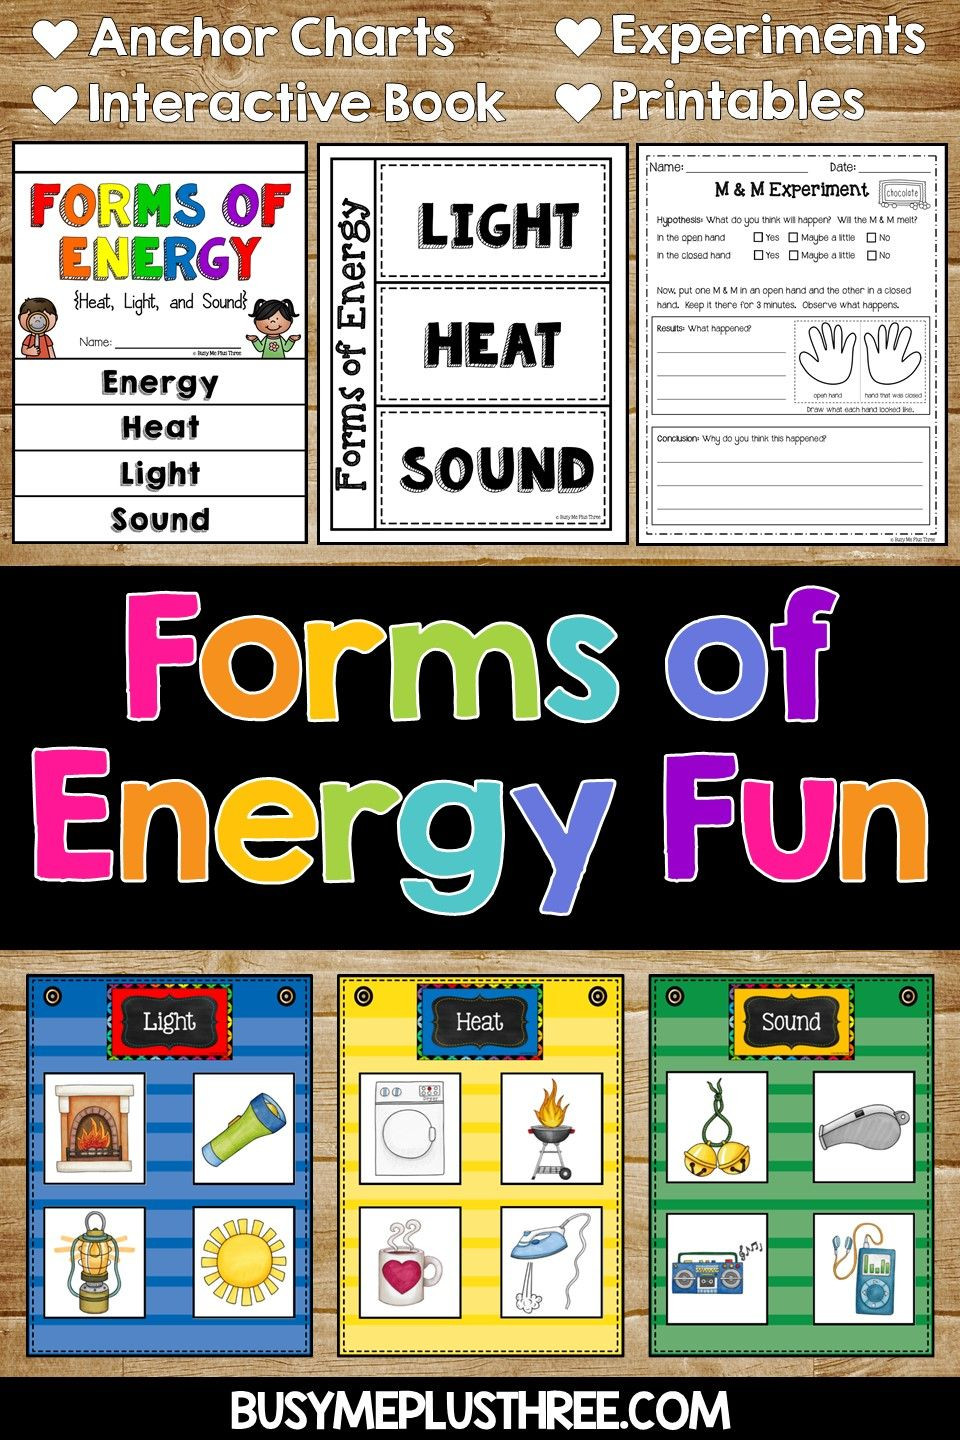 Energy Worksheets for 3rd Grade forms Of Energy Set with Heat Light and sound Activities